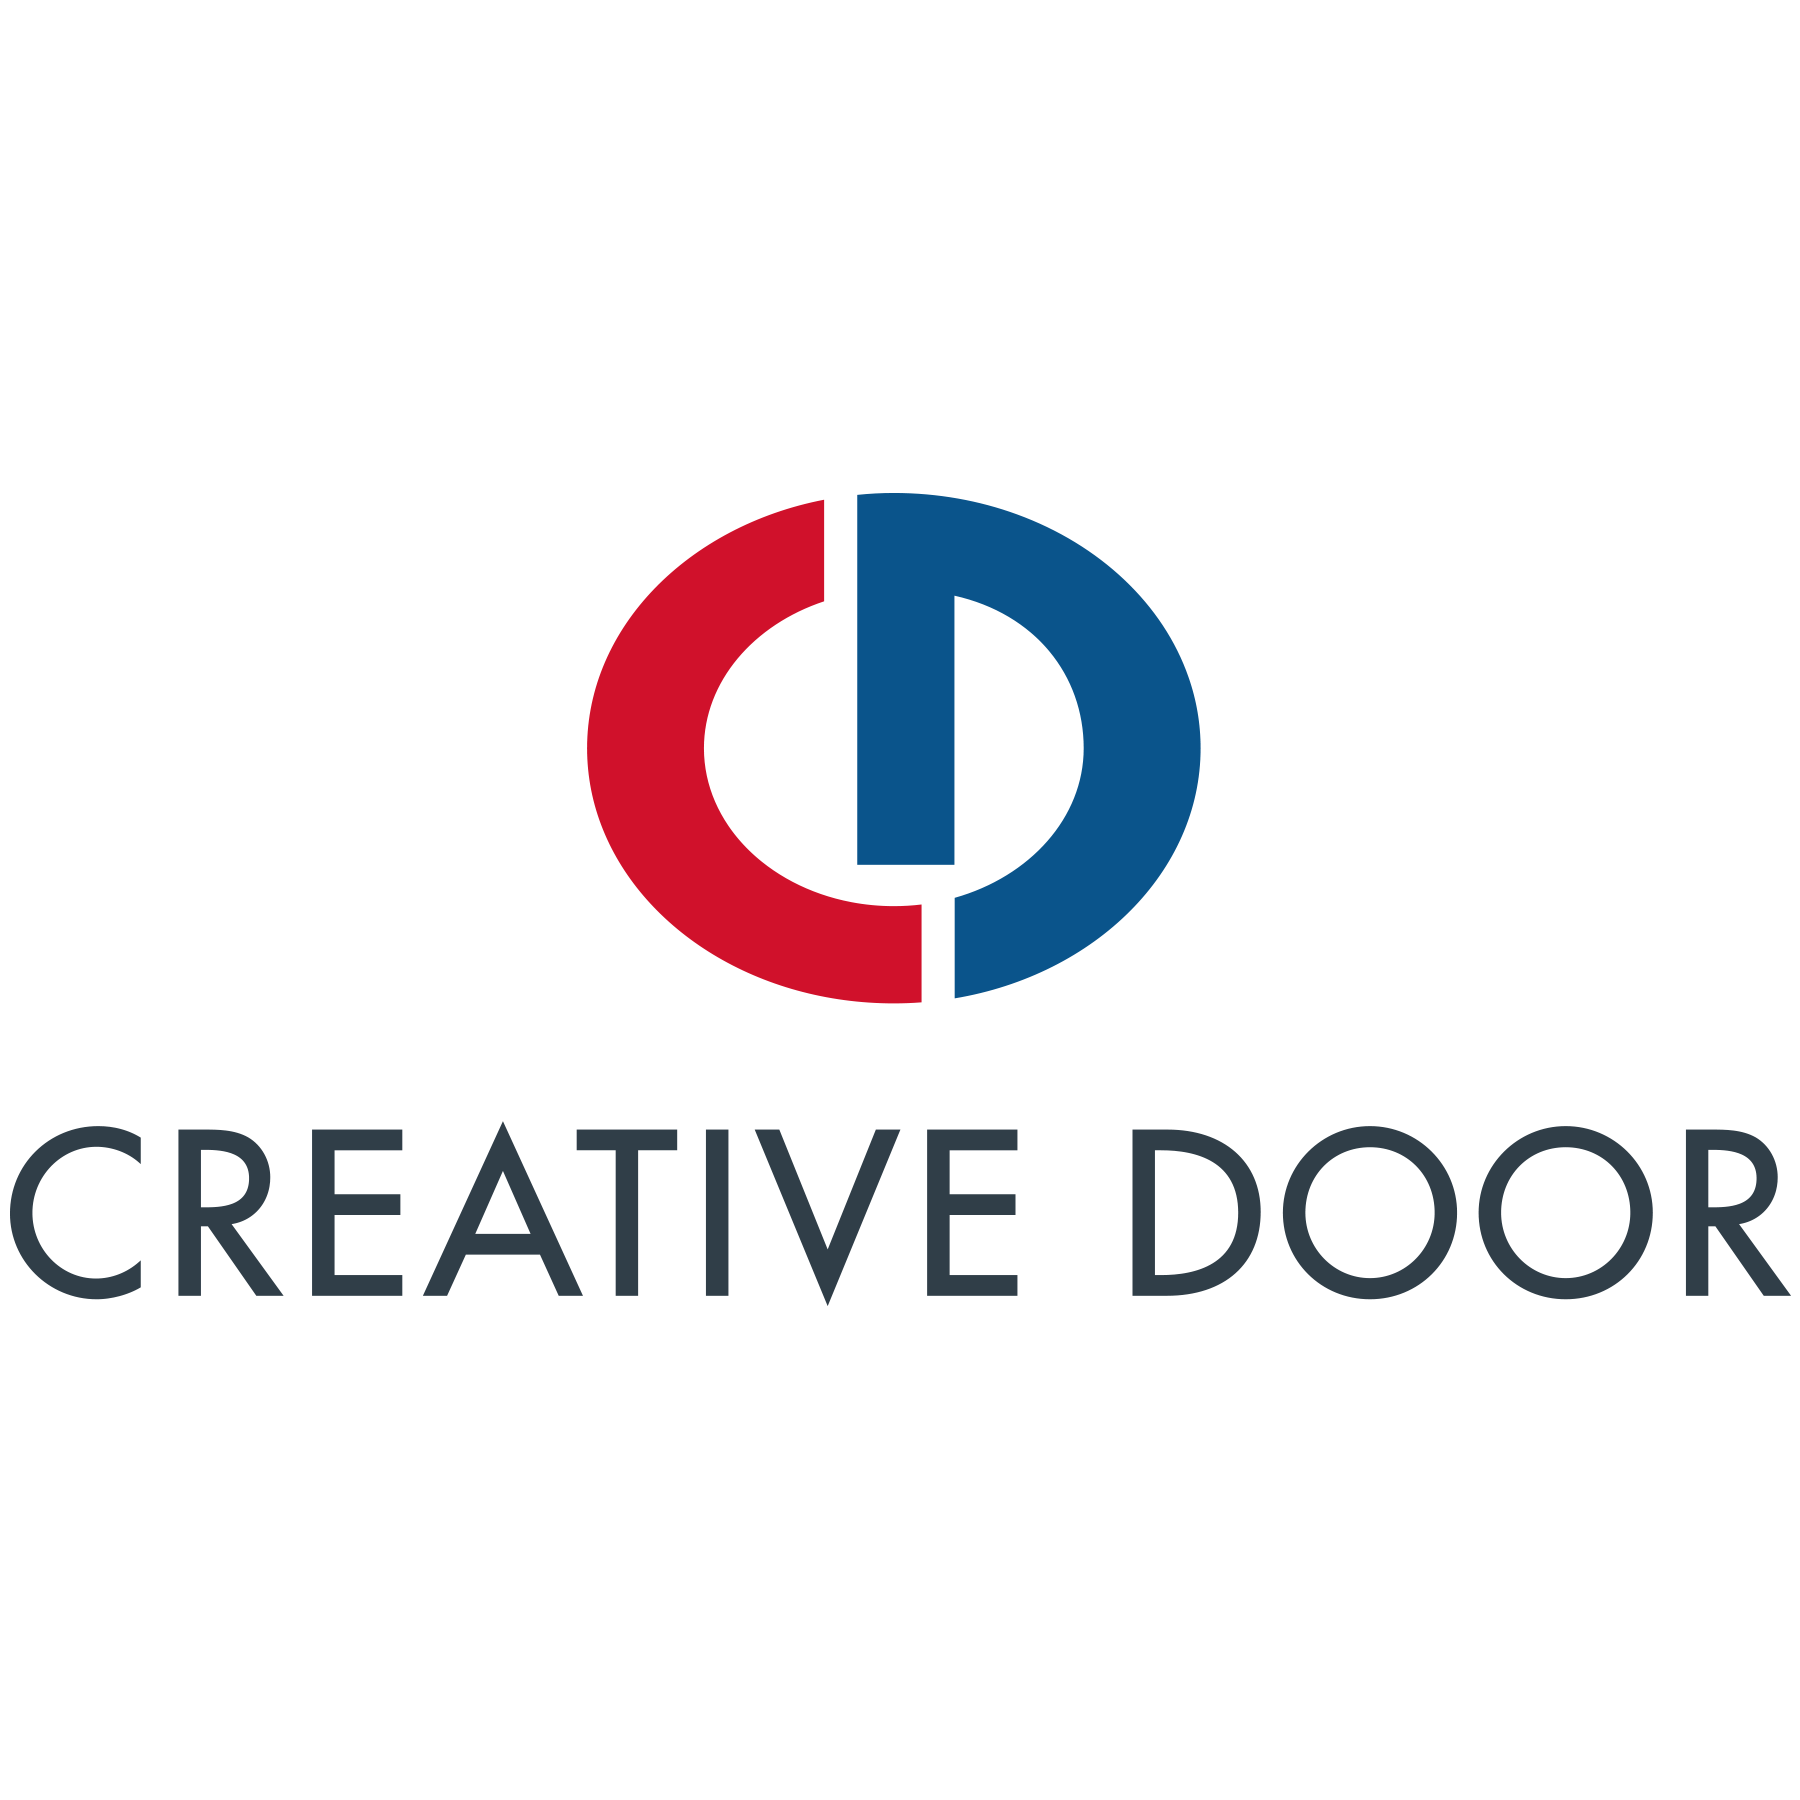 Creative Door - Saskatoon Garage Door & Overhead Door Specialists